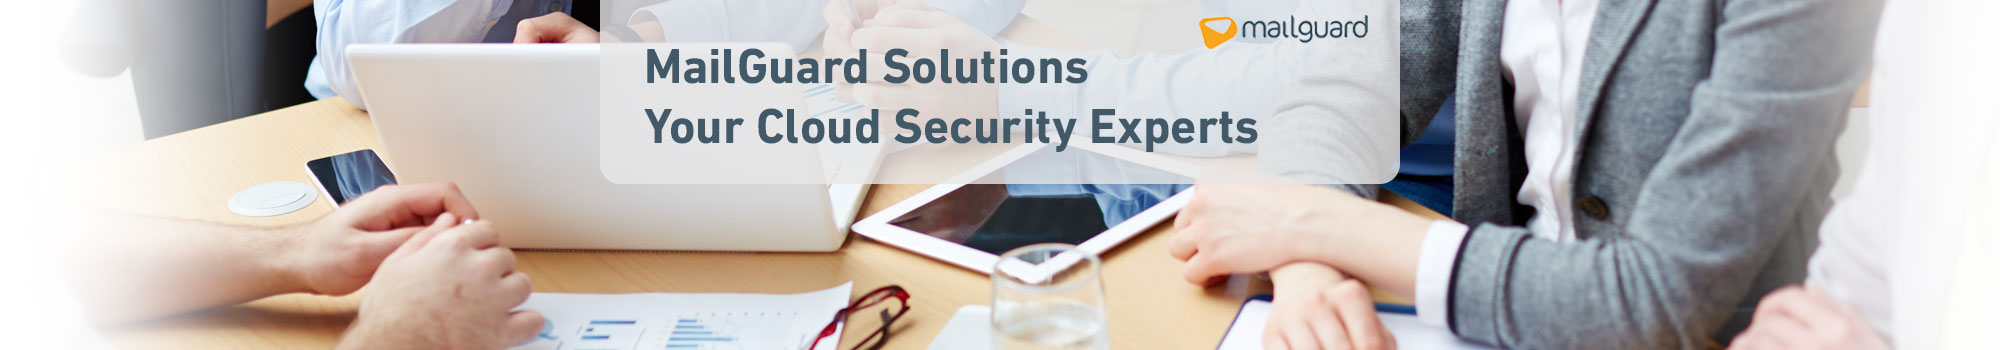 MailGuard Cloud Security Solutions